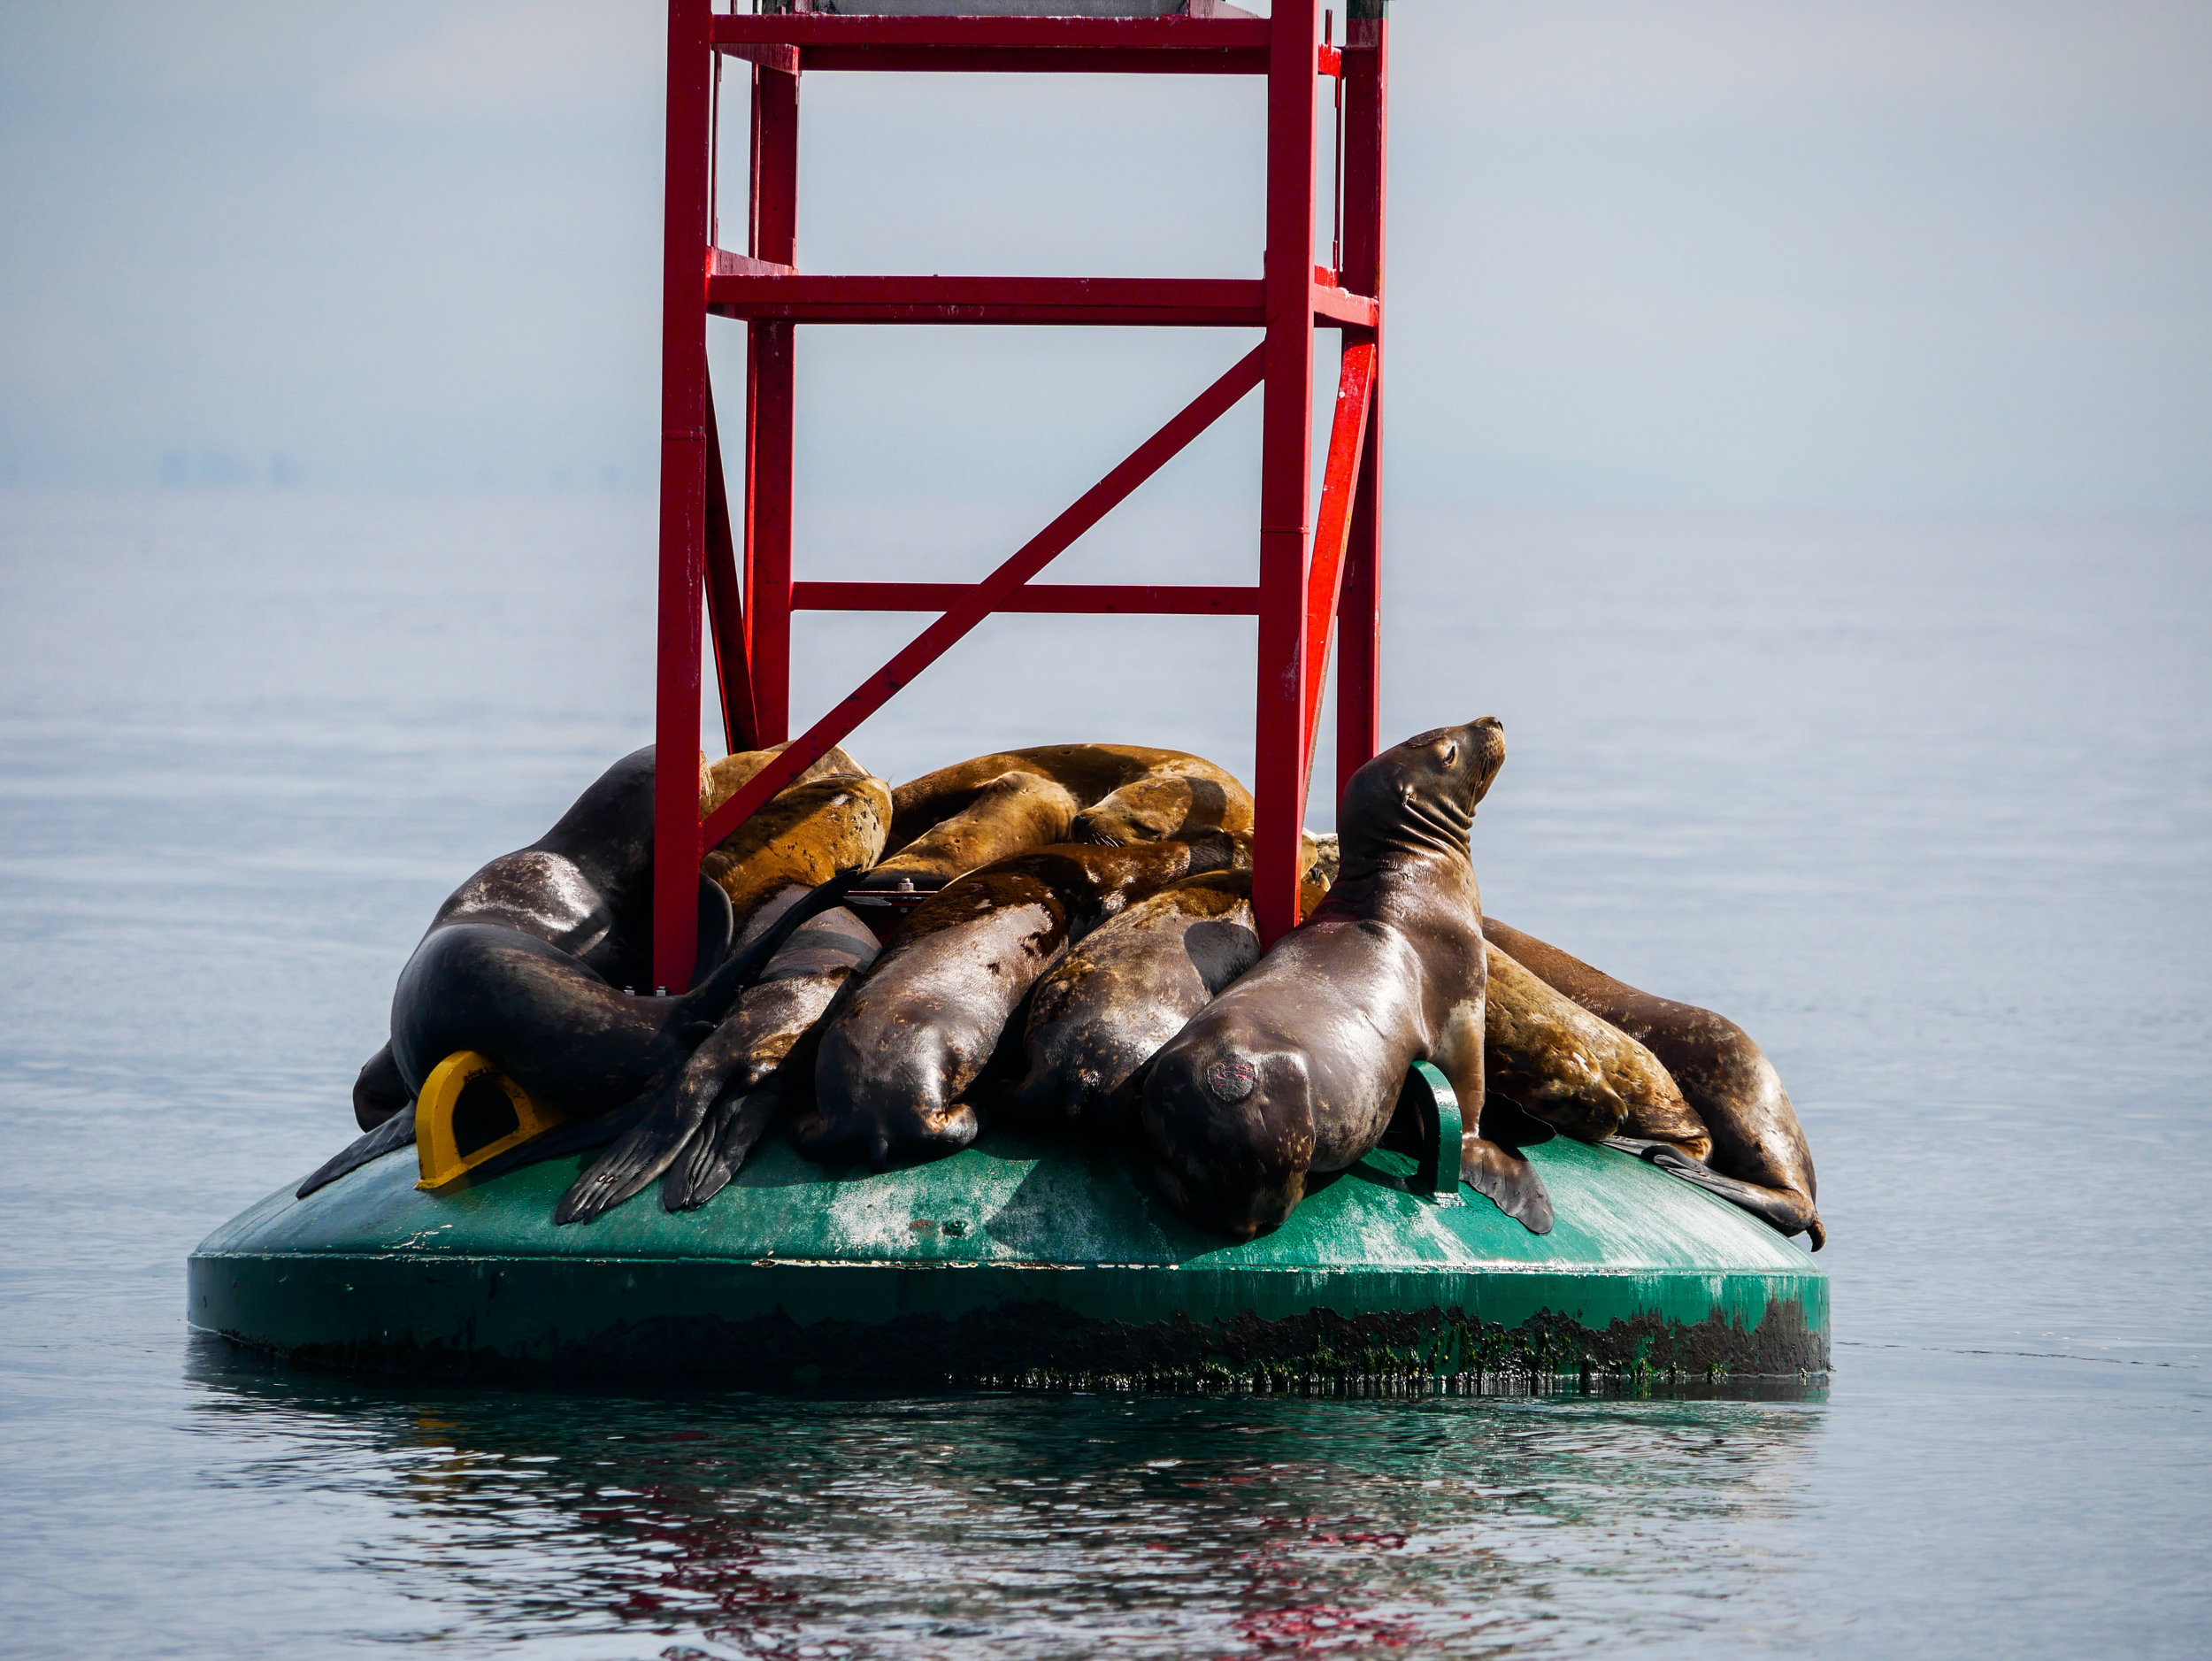 Stellers resting on the Gabriola Reef buoy. Photo by Alanna Vivani - 10:30 tour.